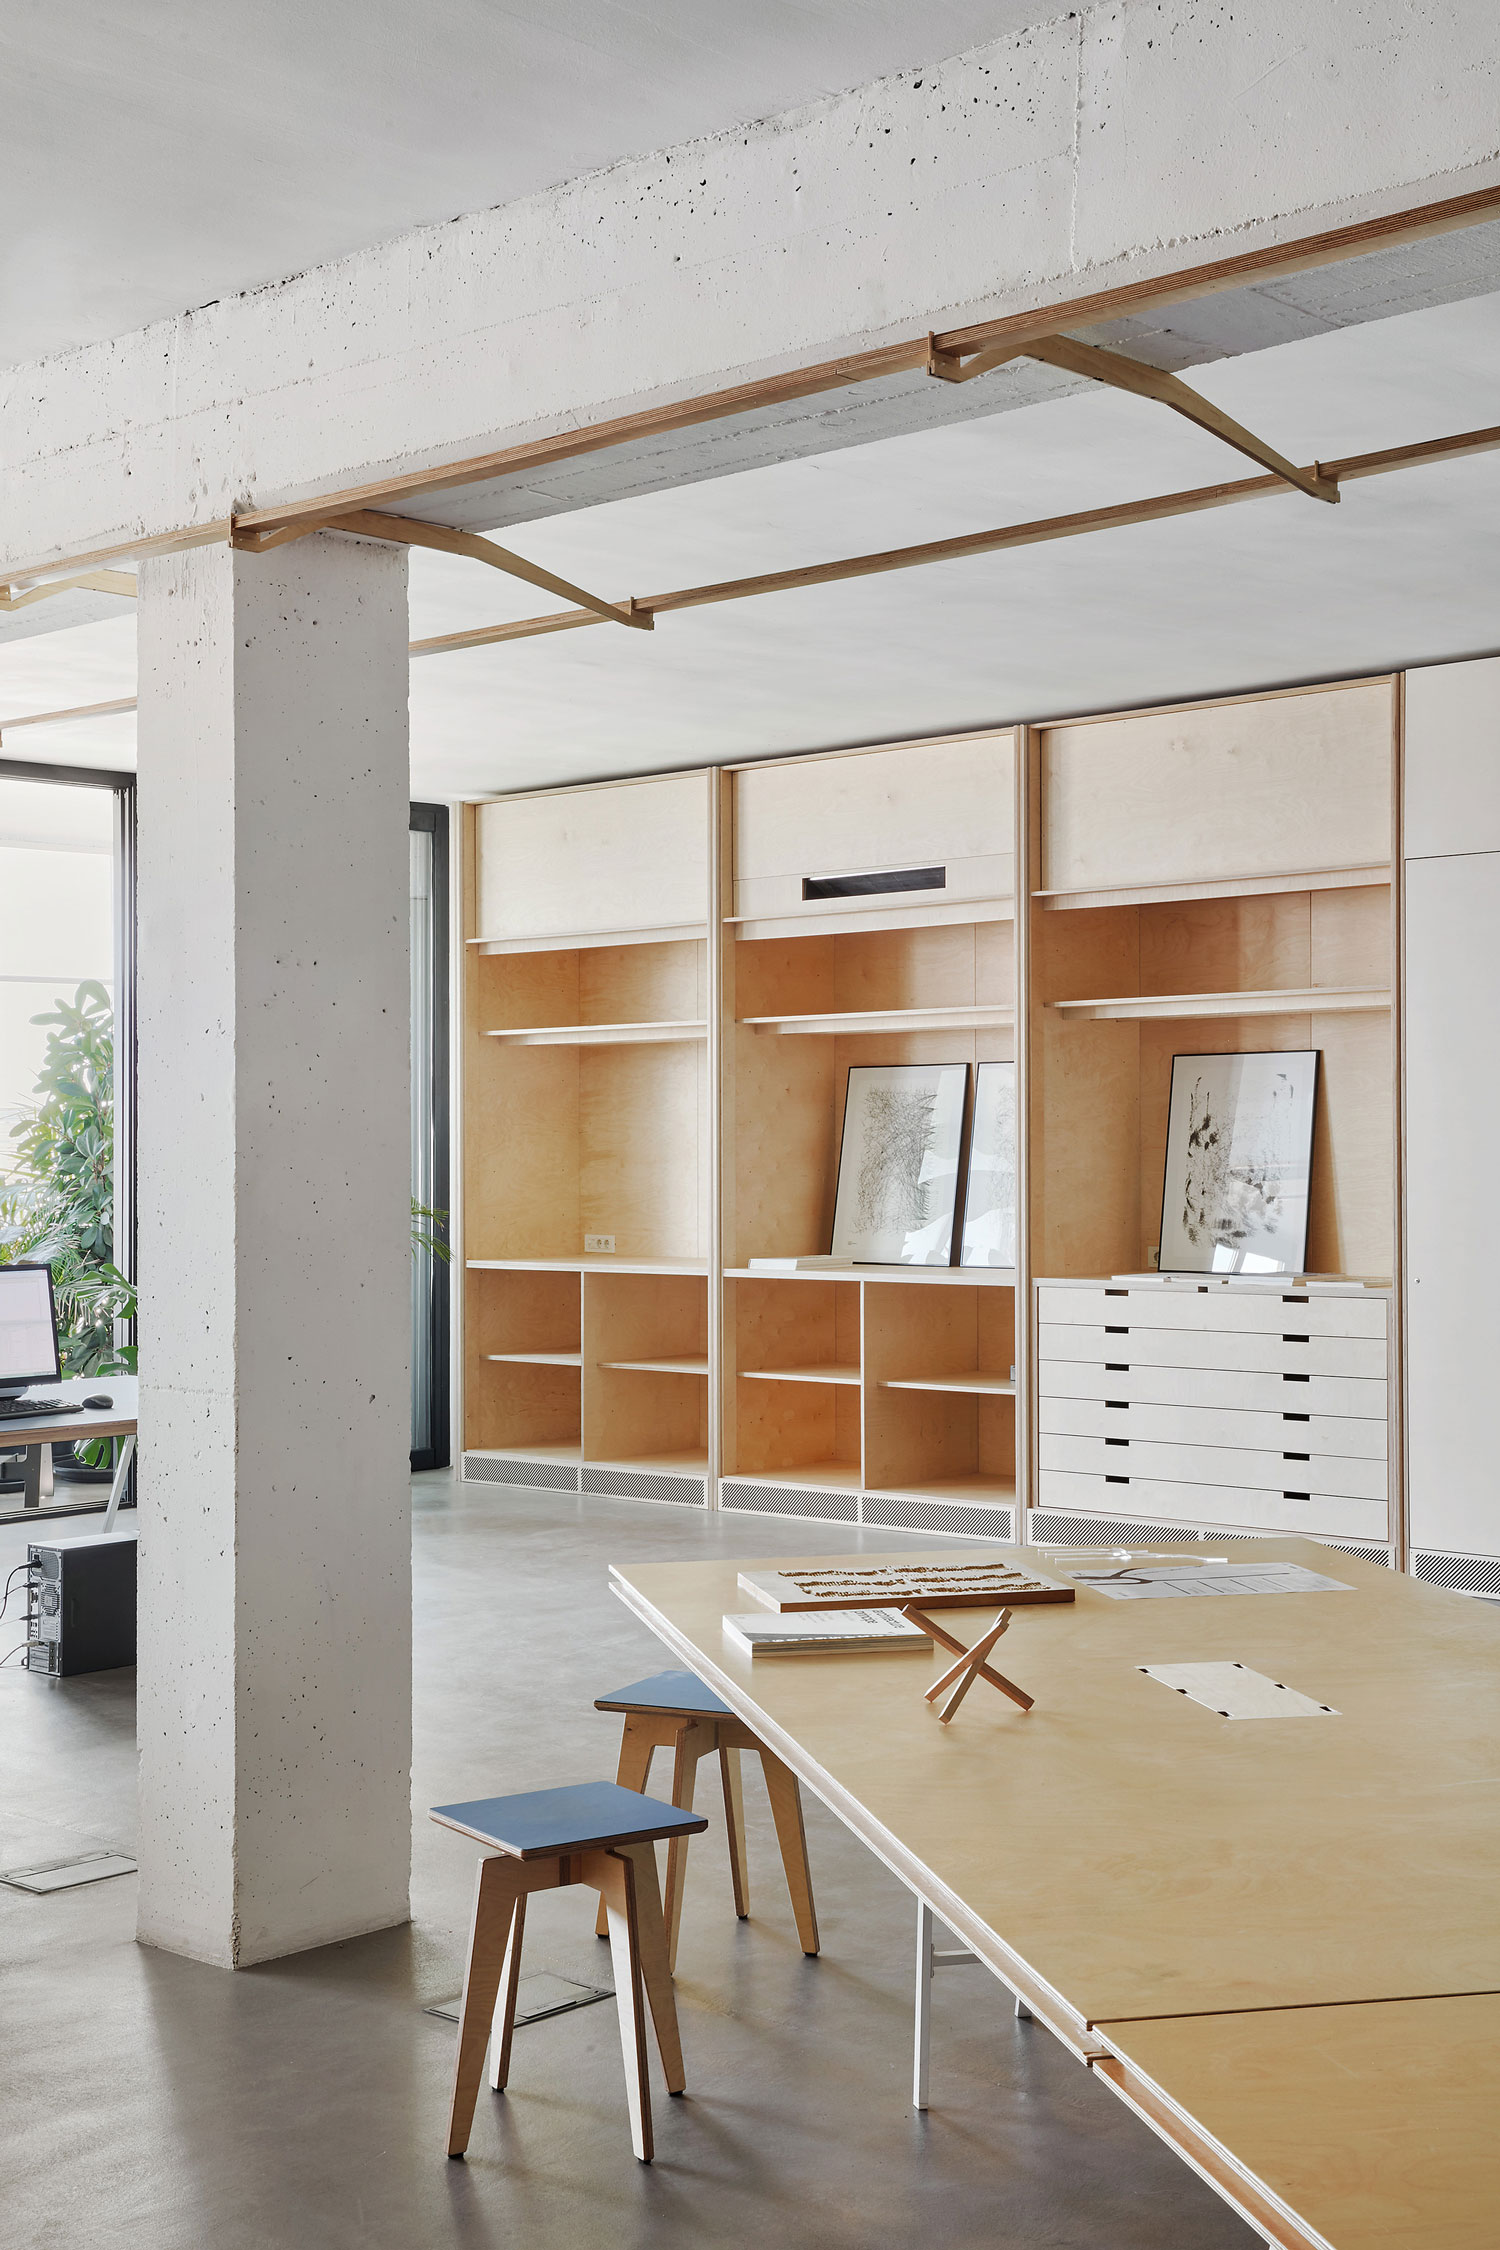 Co-Working Office in Barcelona, Spain by APPAREIL | Yellowtrace